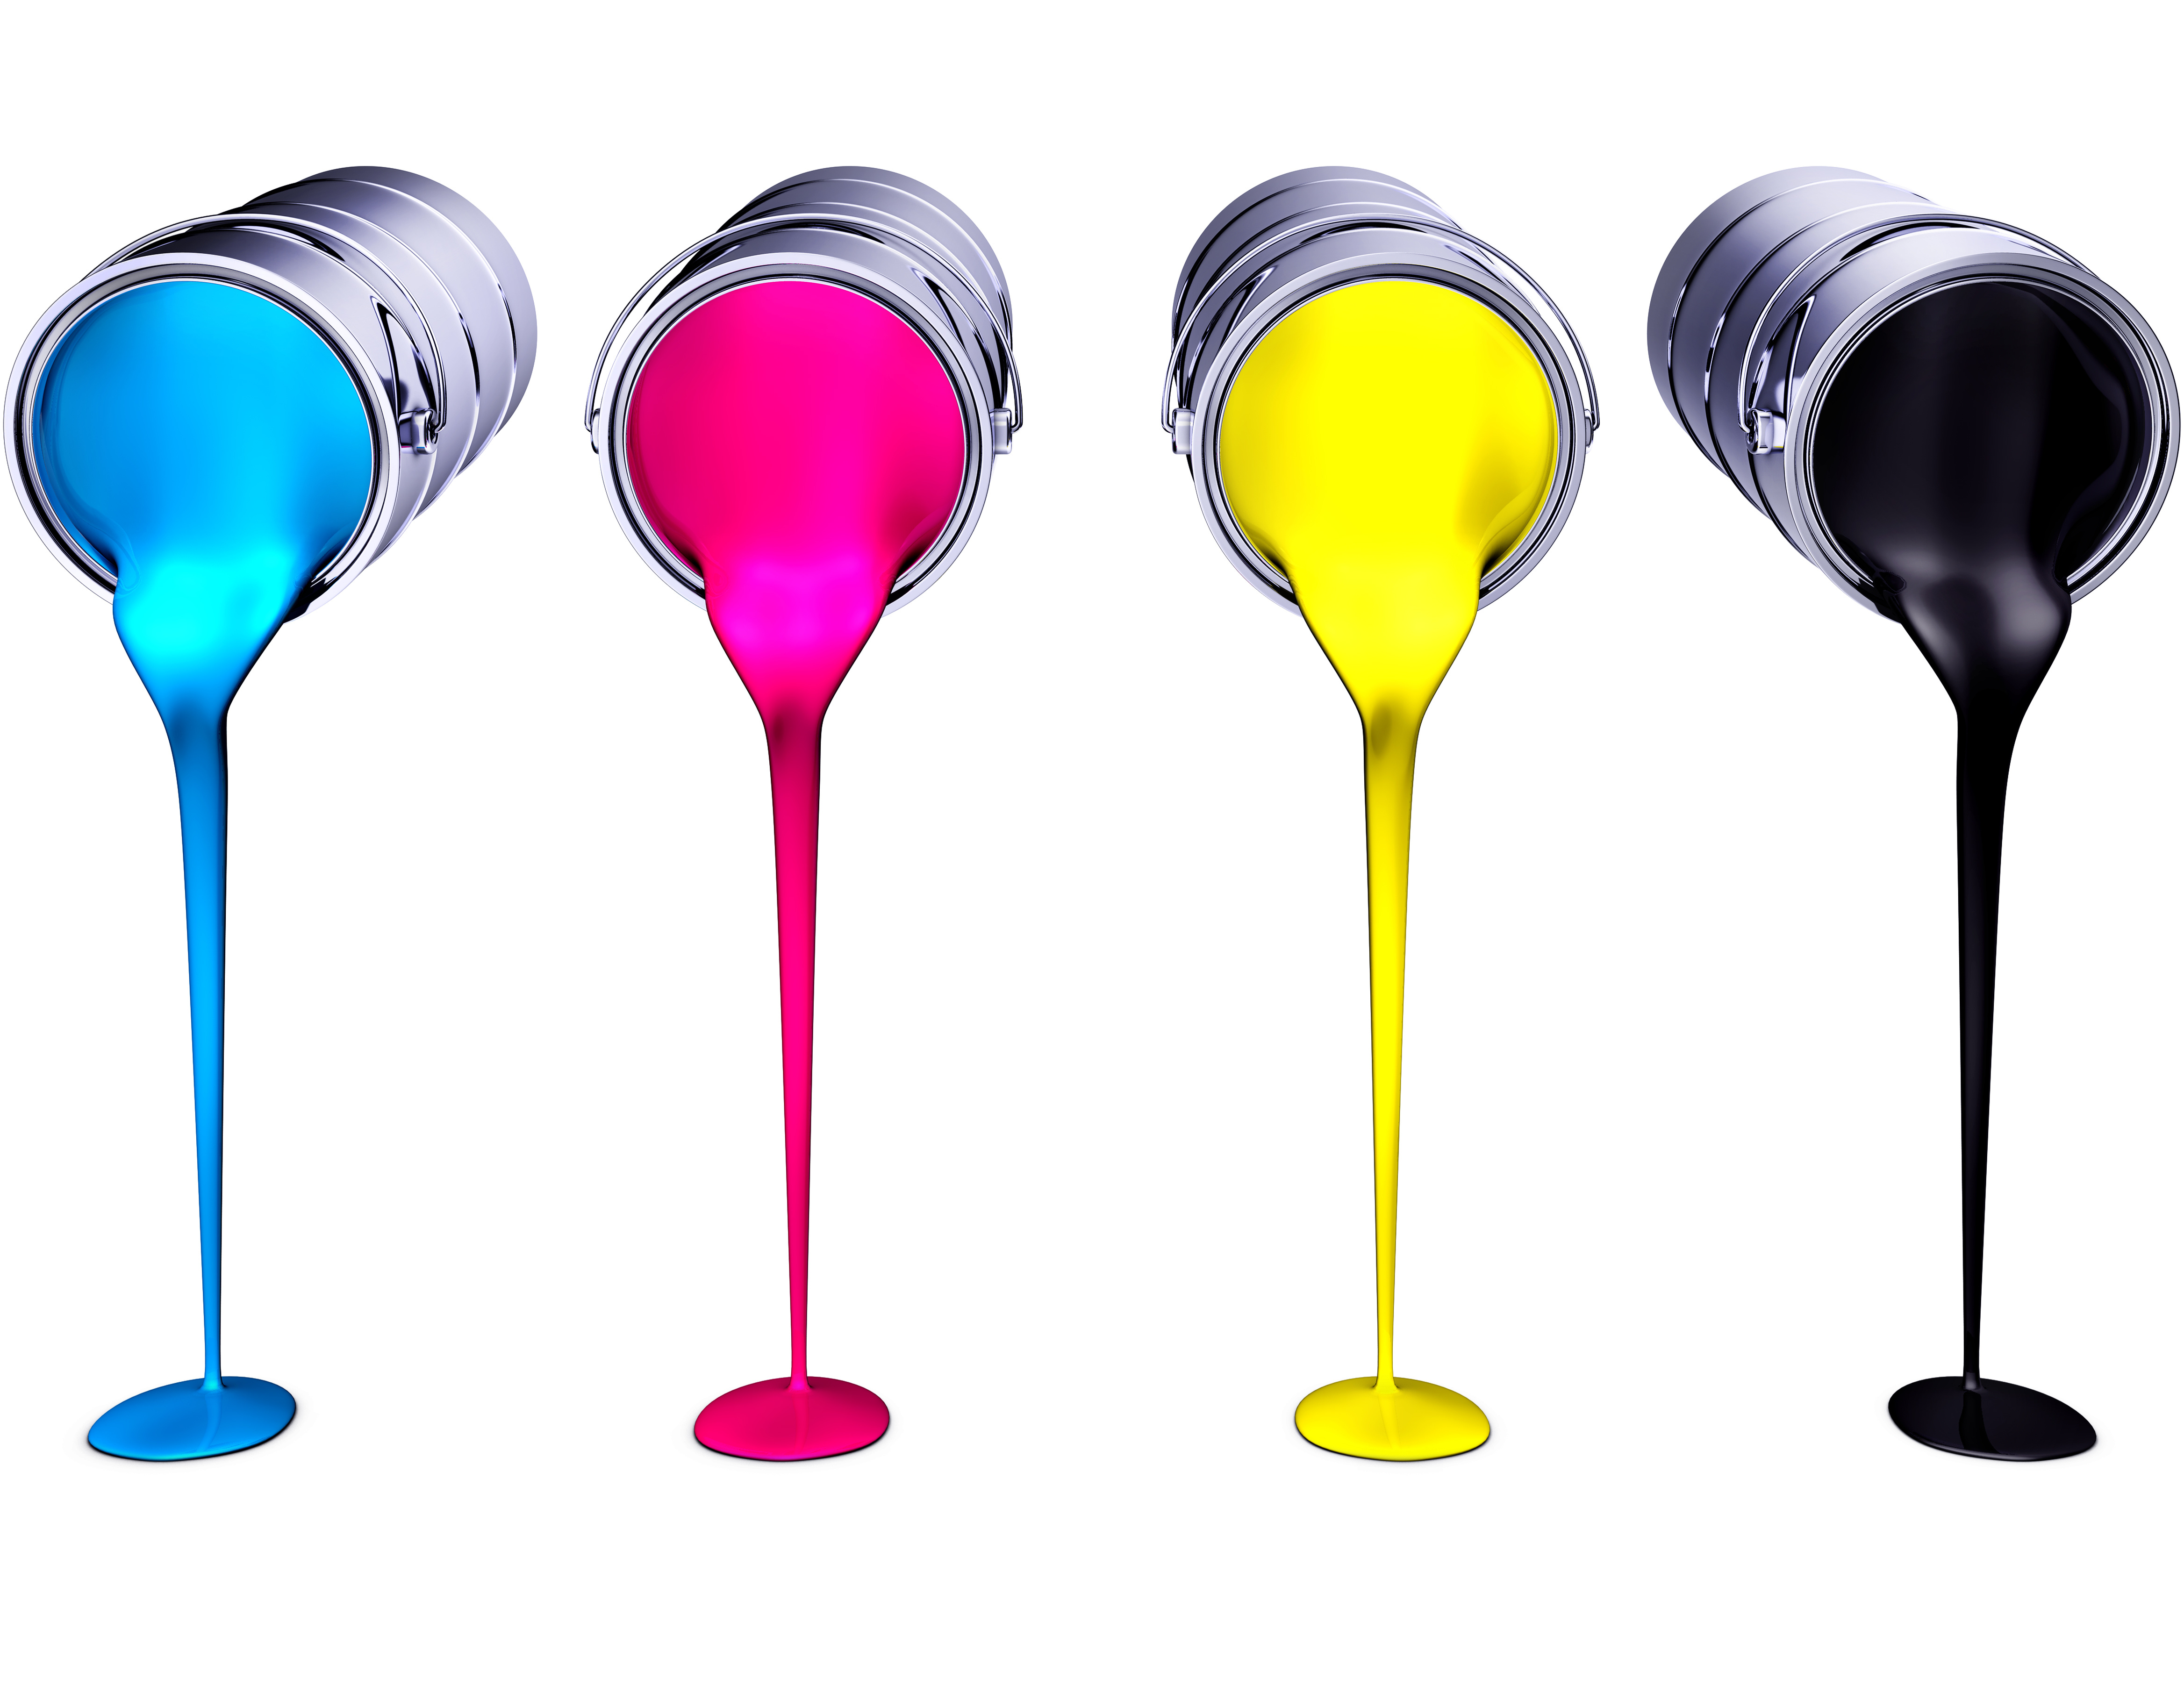 CMYK or 4-color Process Printing